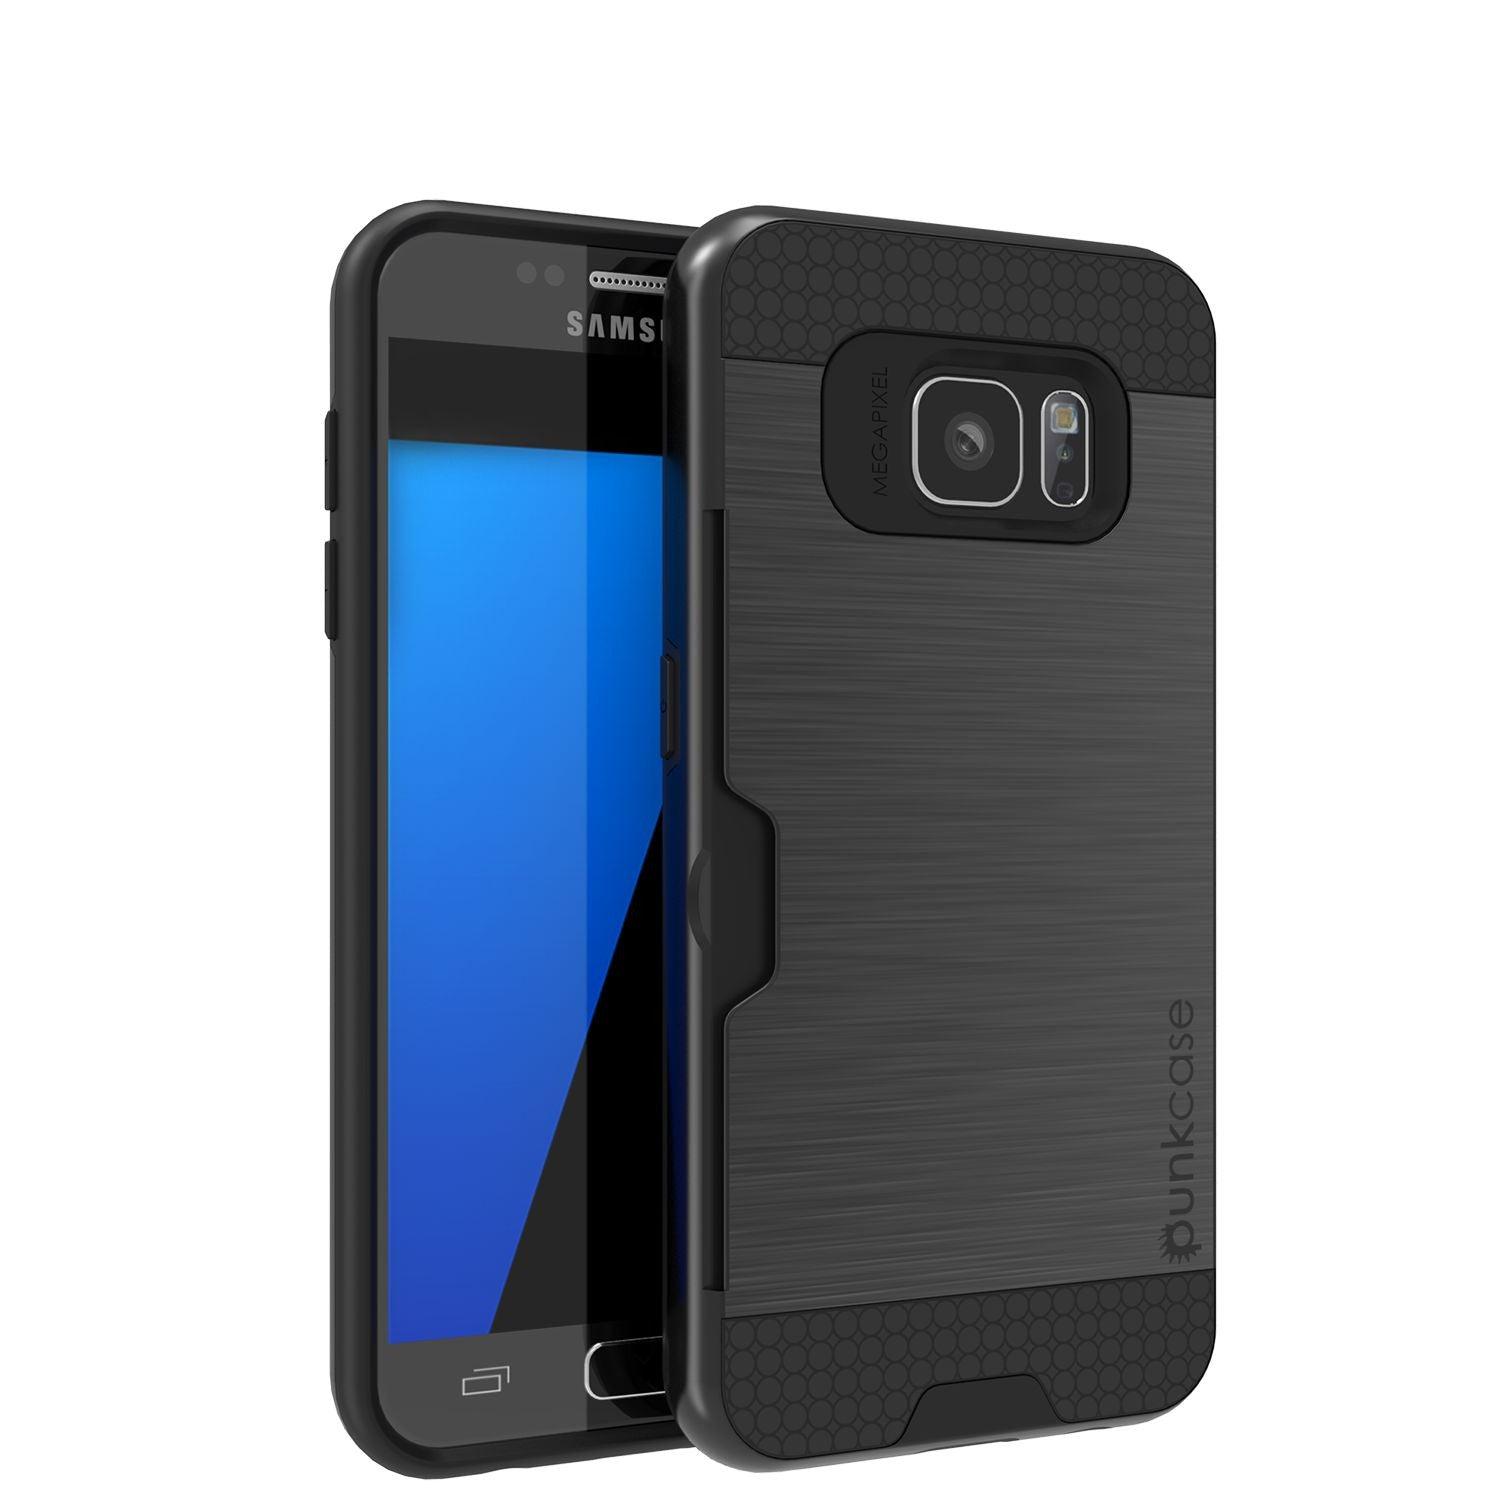 cases for iphone 7 7 plus samsung galaxy s8 note 5 lg g6. Black Bedroom Furniture Sets. Home Design Ideas